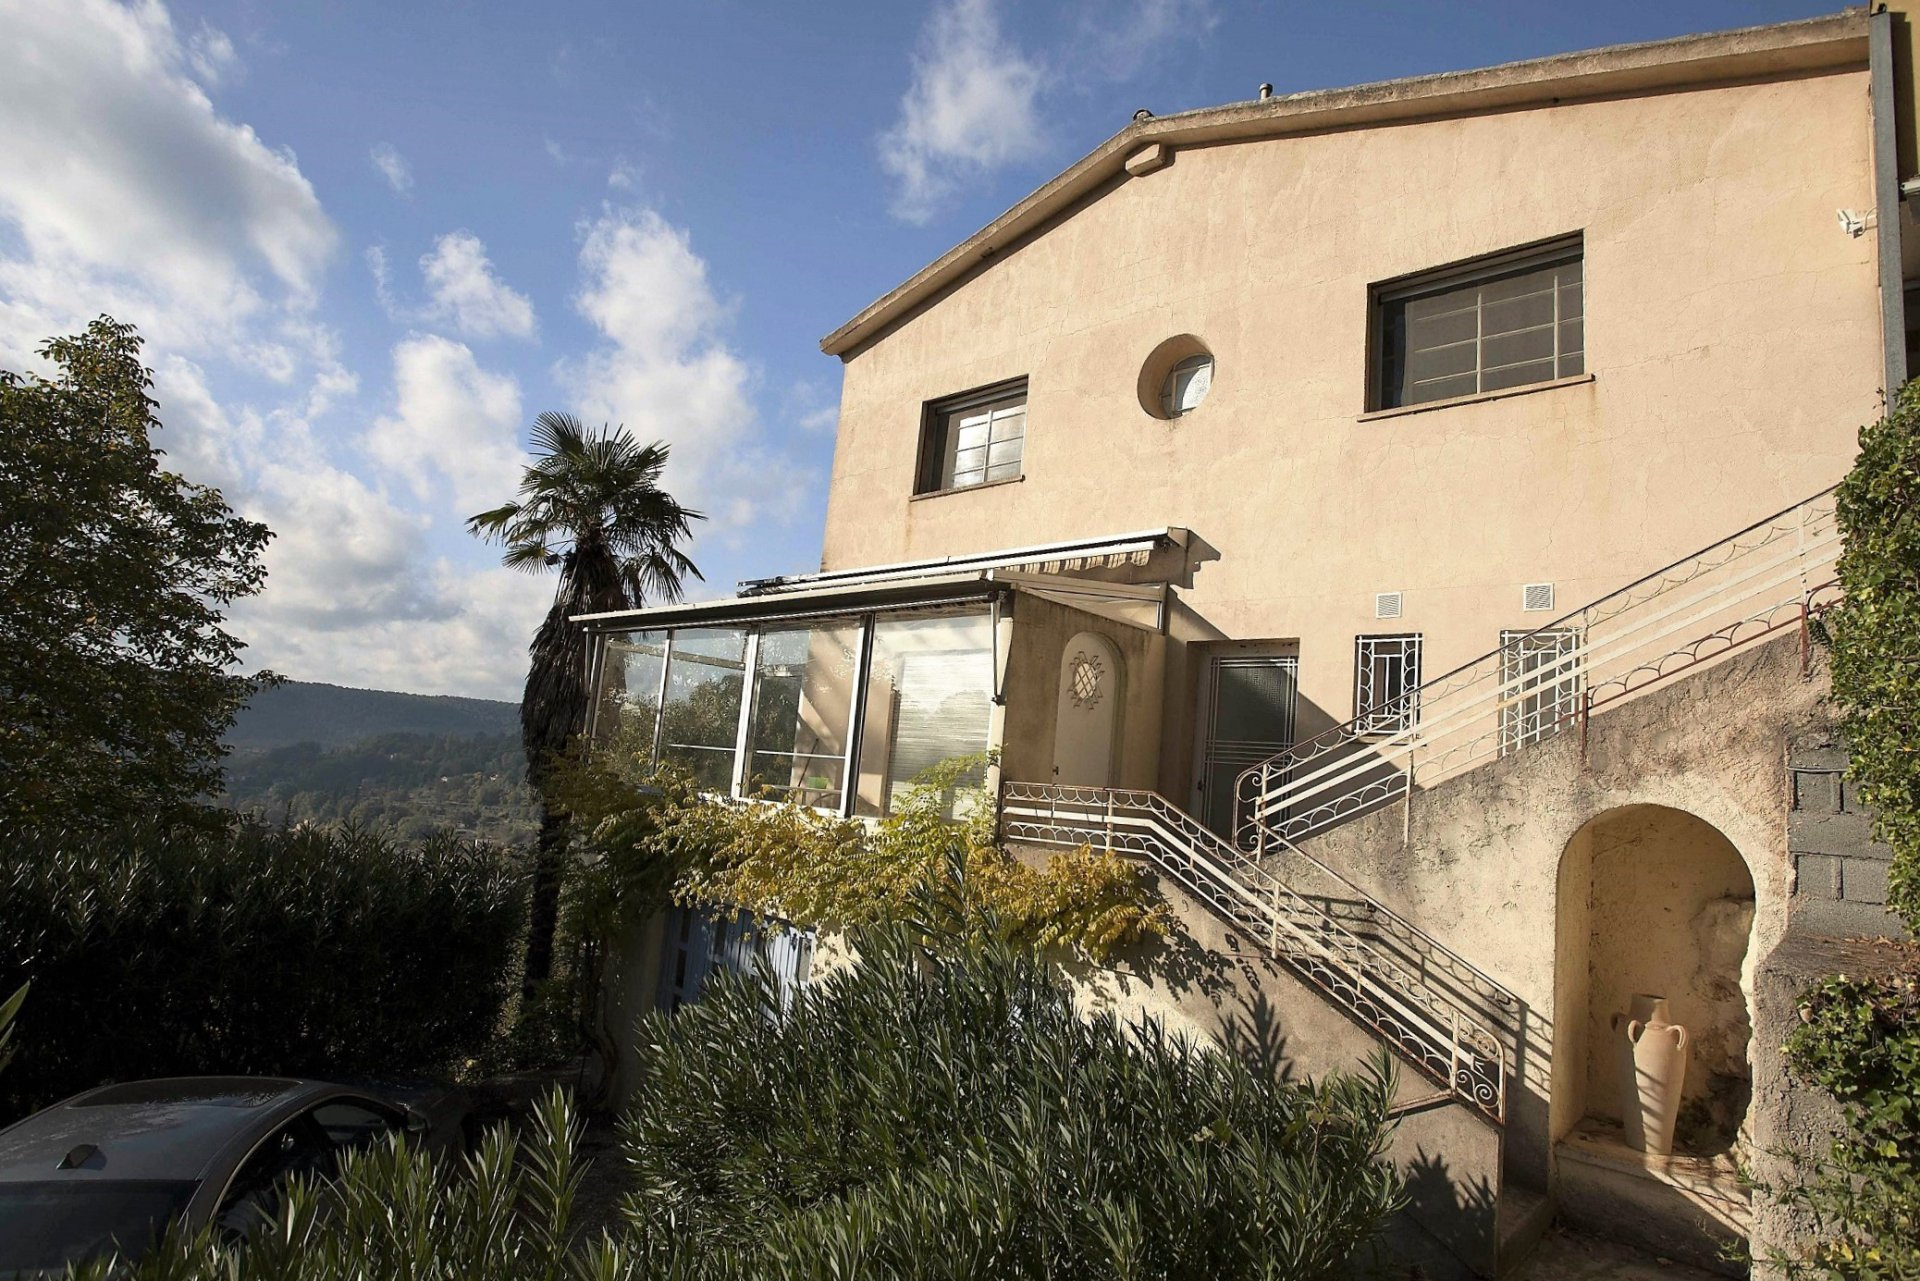 Villa 140 m² terrain piscinable de 4284m² Position dominante